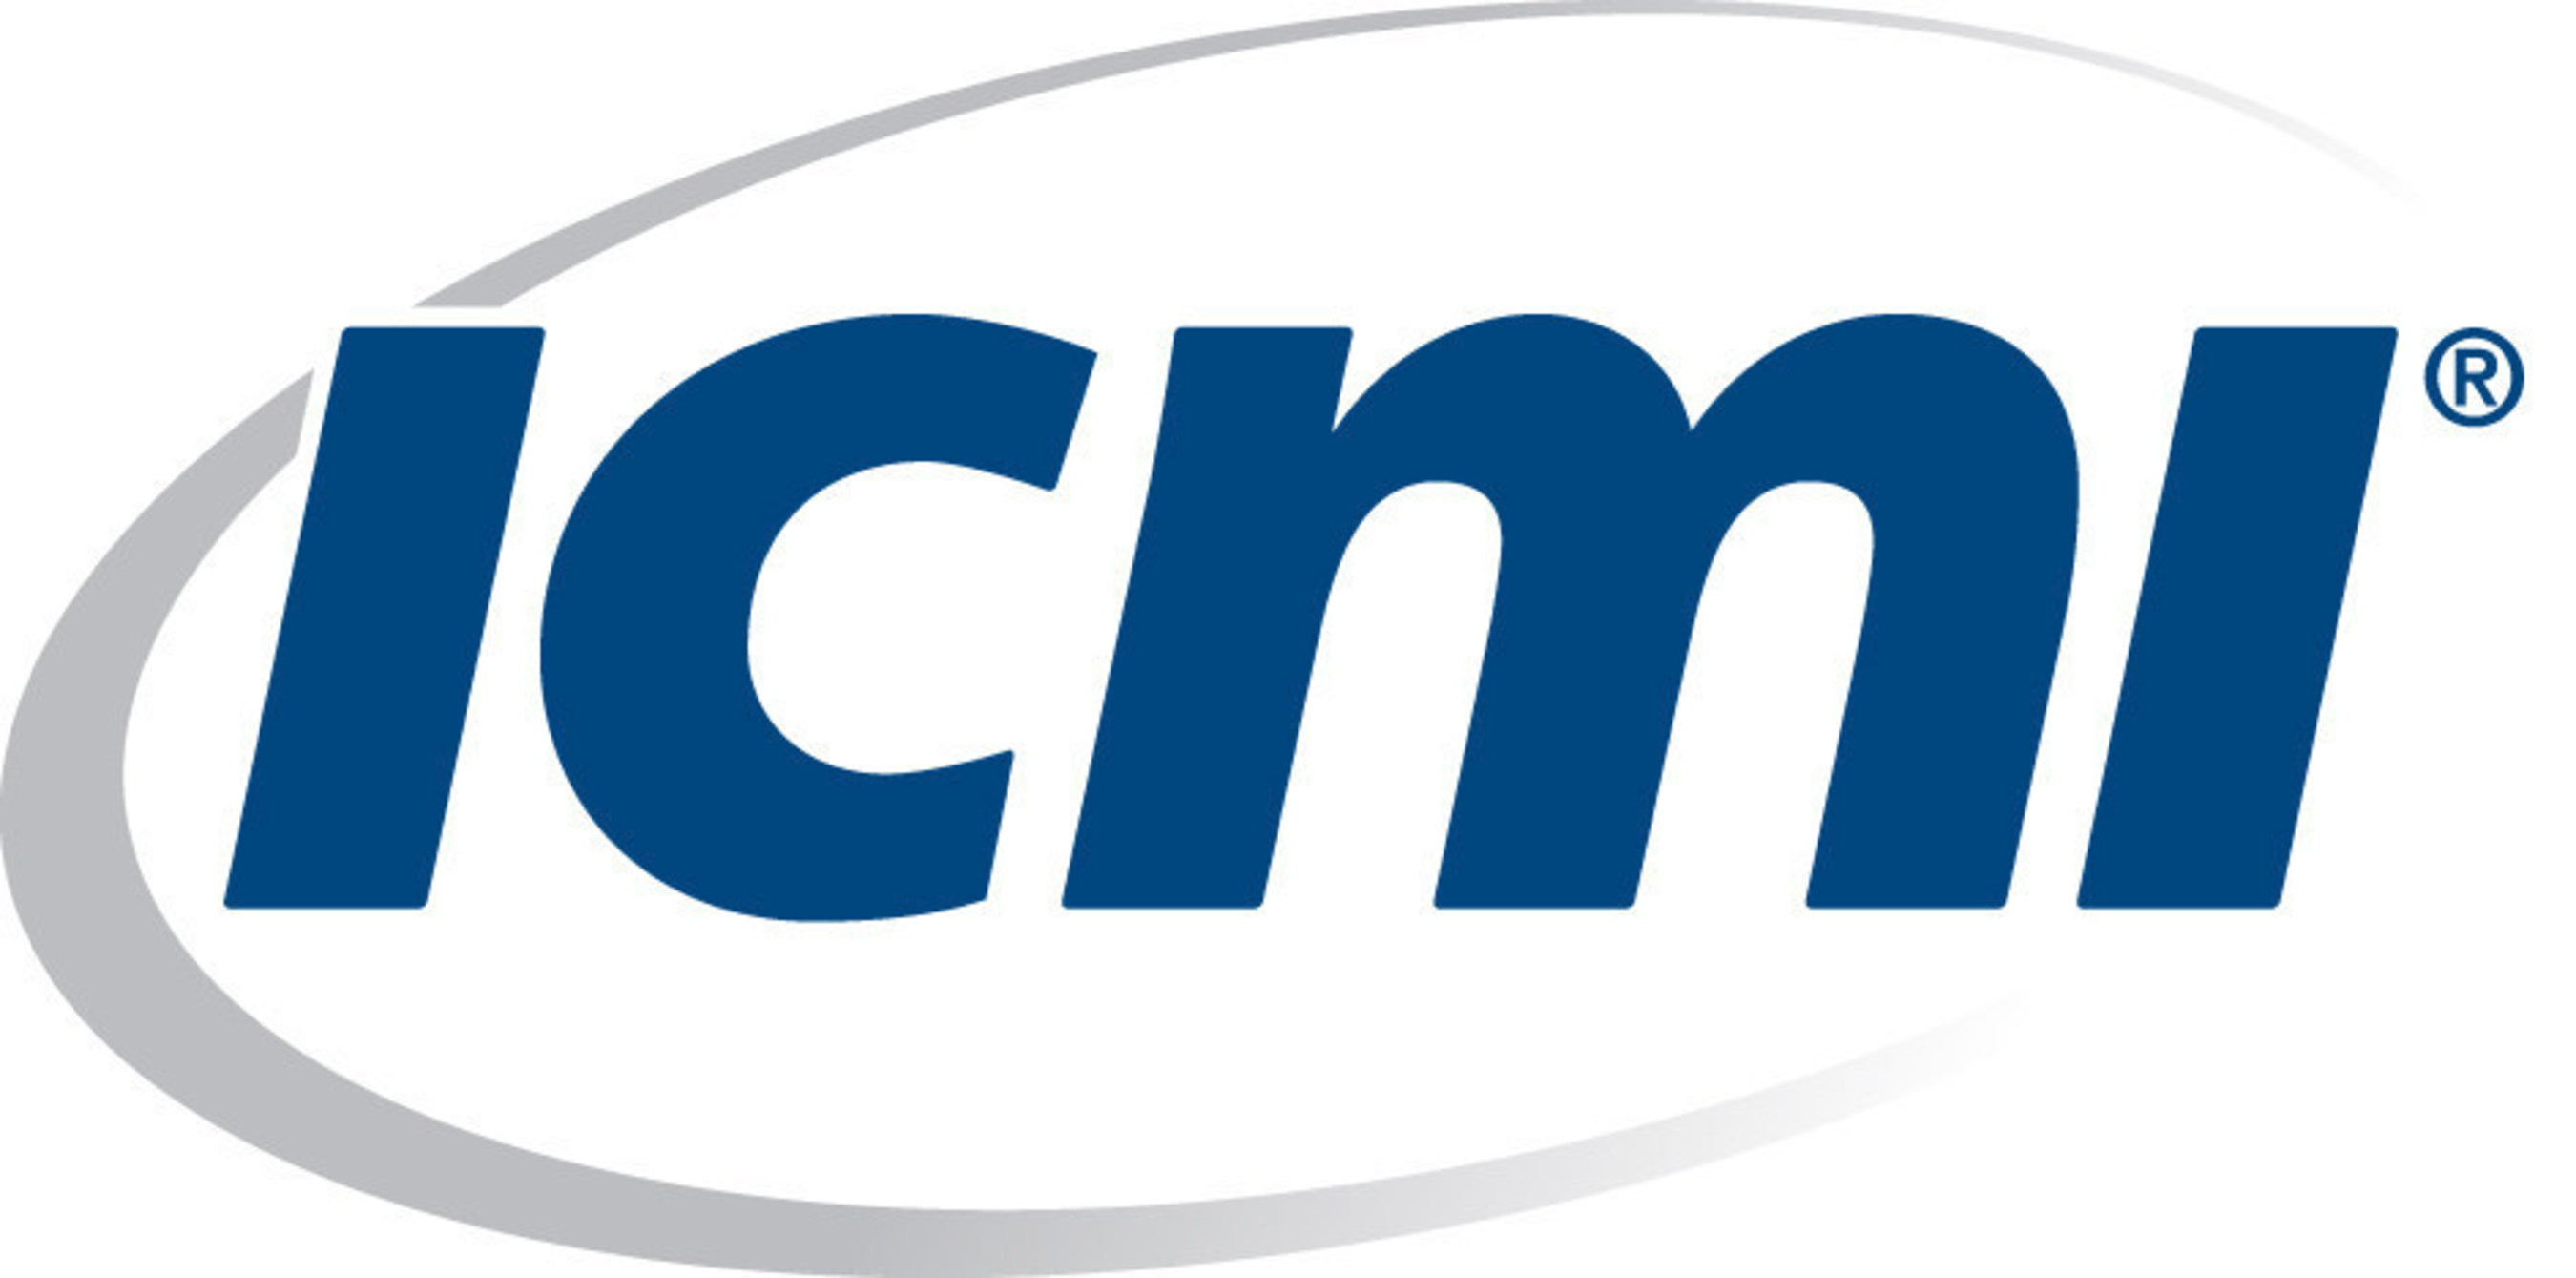 The International Customer Management Institute (ICMI) announces its whitepaper, 3 Insider Perspectives on Removing the Roadblocks to an Effortless Customer Experience.